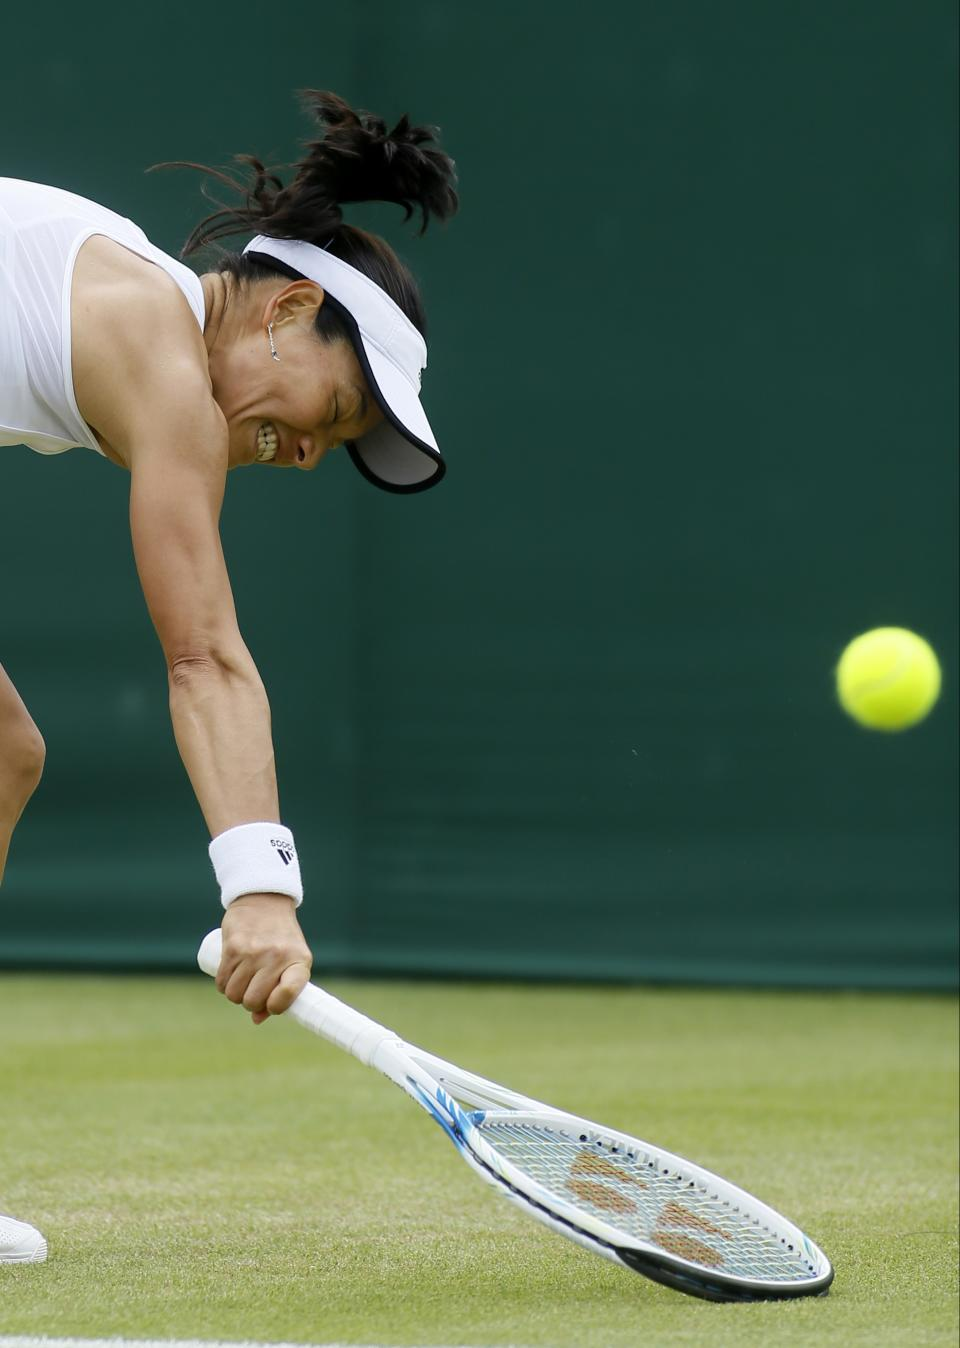 Kimiko Date-Krumm of Japan plays a return to Alexandra Cadantu of Romania in a Women's second round singles match at the All England Lawn Tennis Championships in Wimbledon, London, Thursday, June 27, 2013. (AP Photo/Kirsty Wigglesworth)